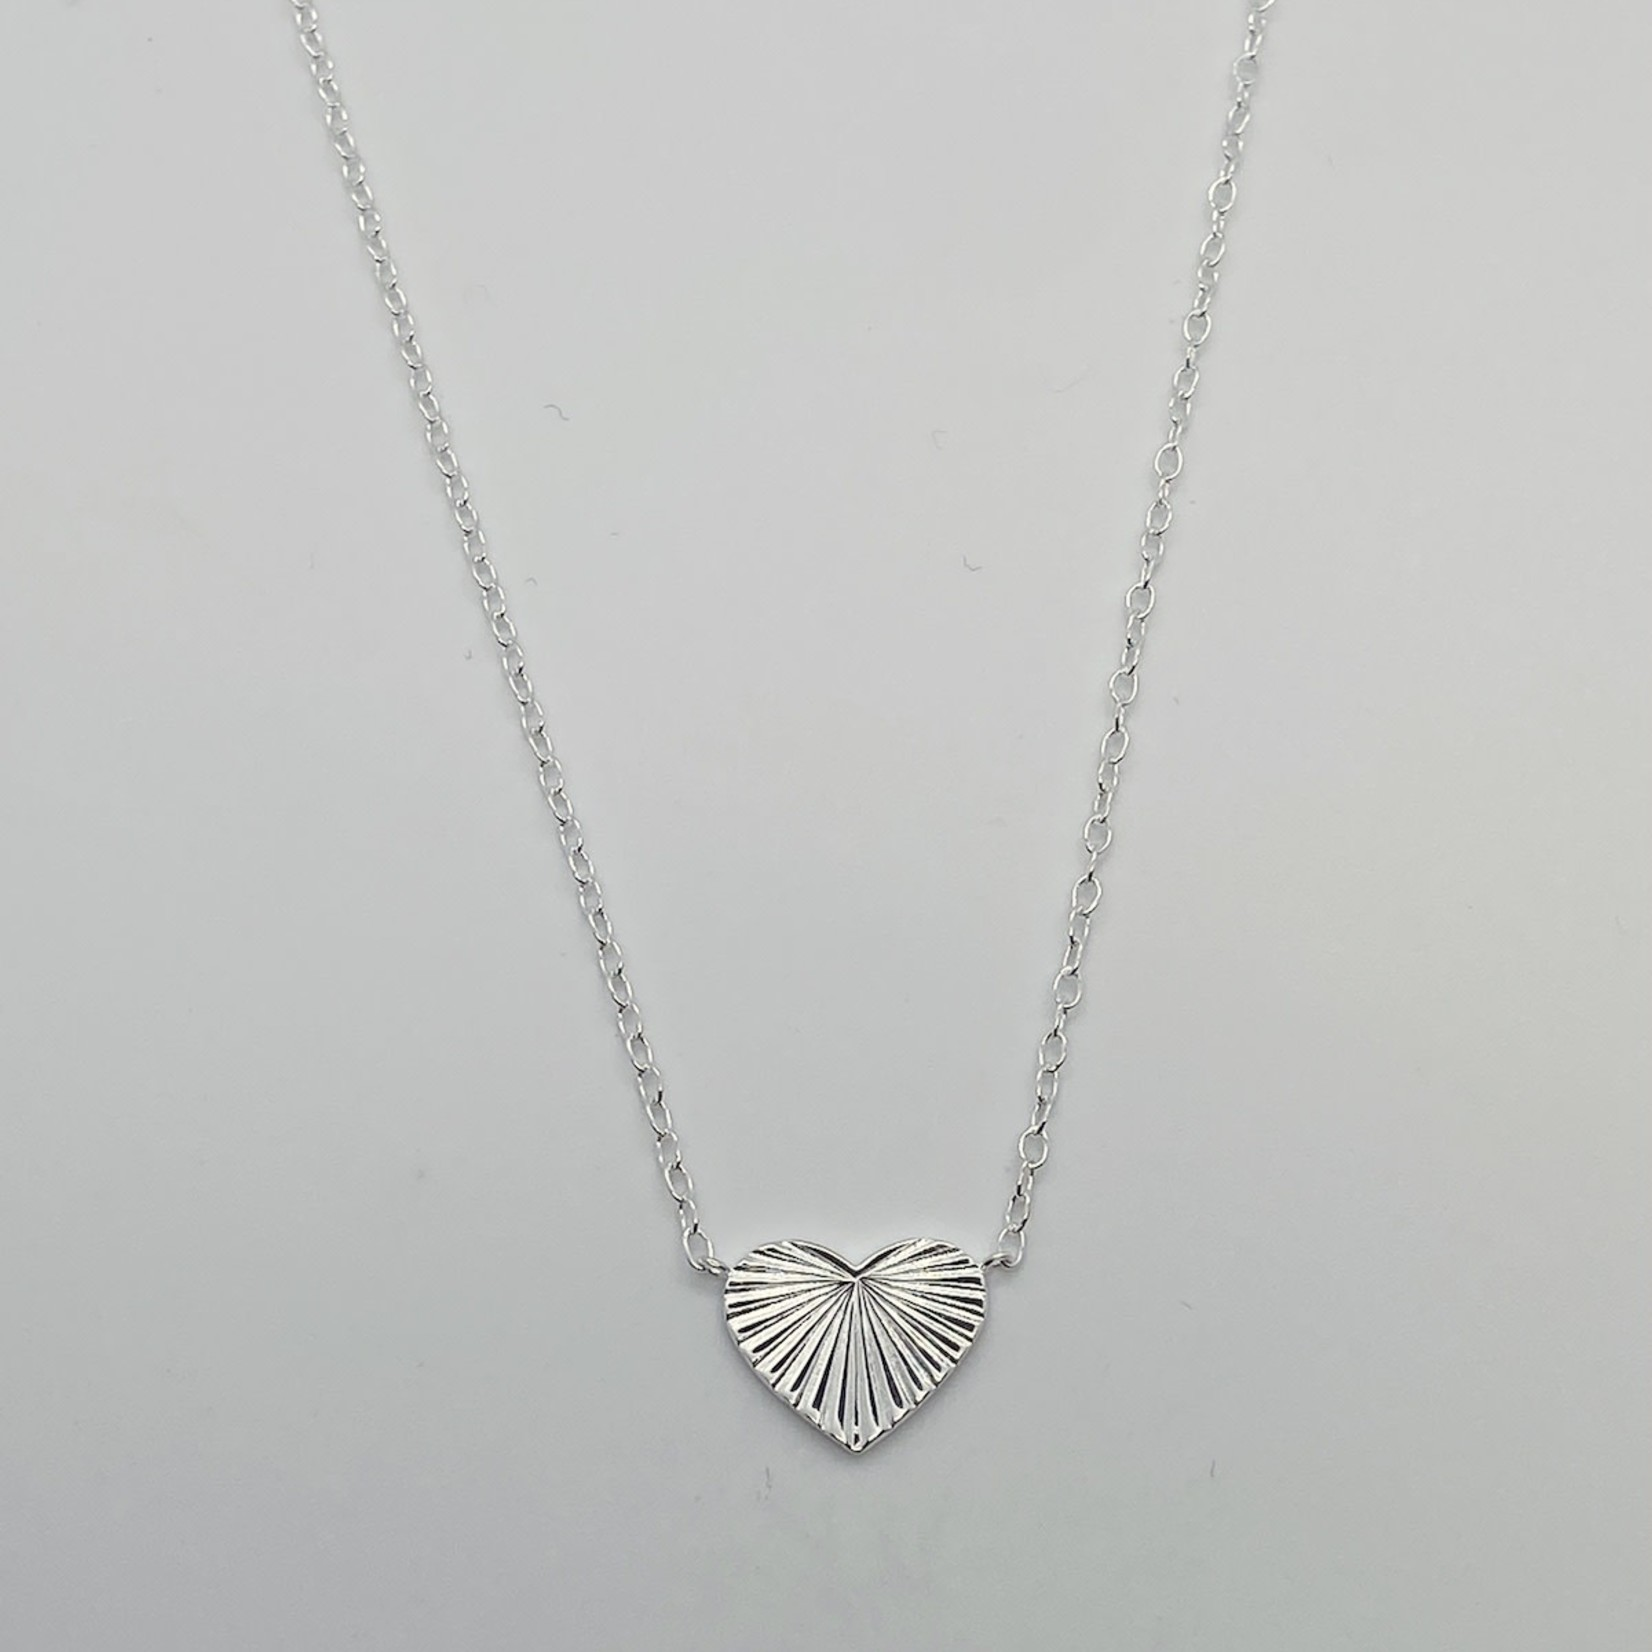 Silver Heart with Rays Necklace